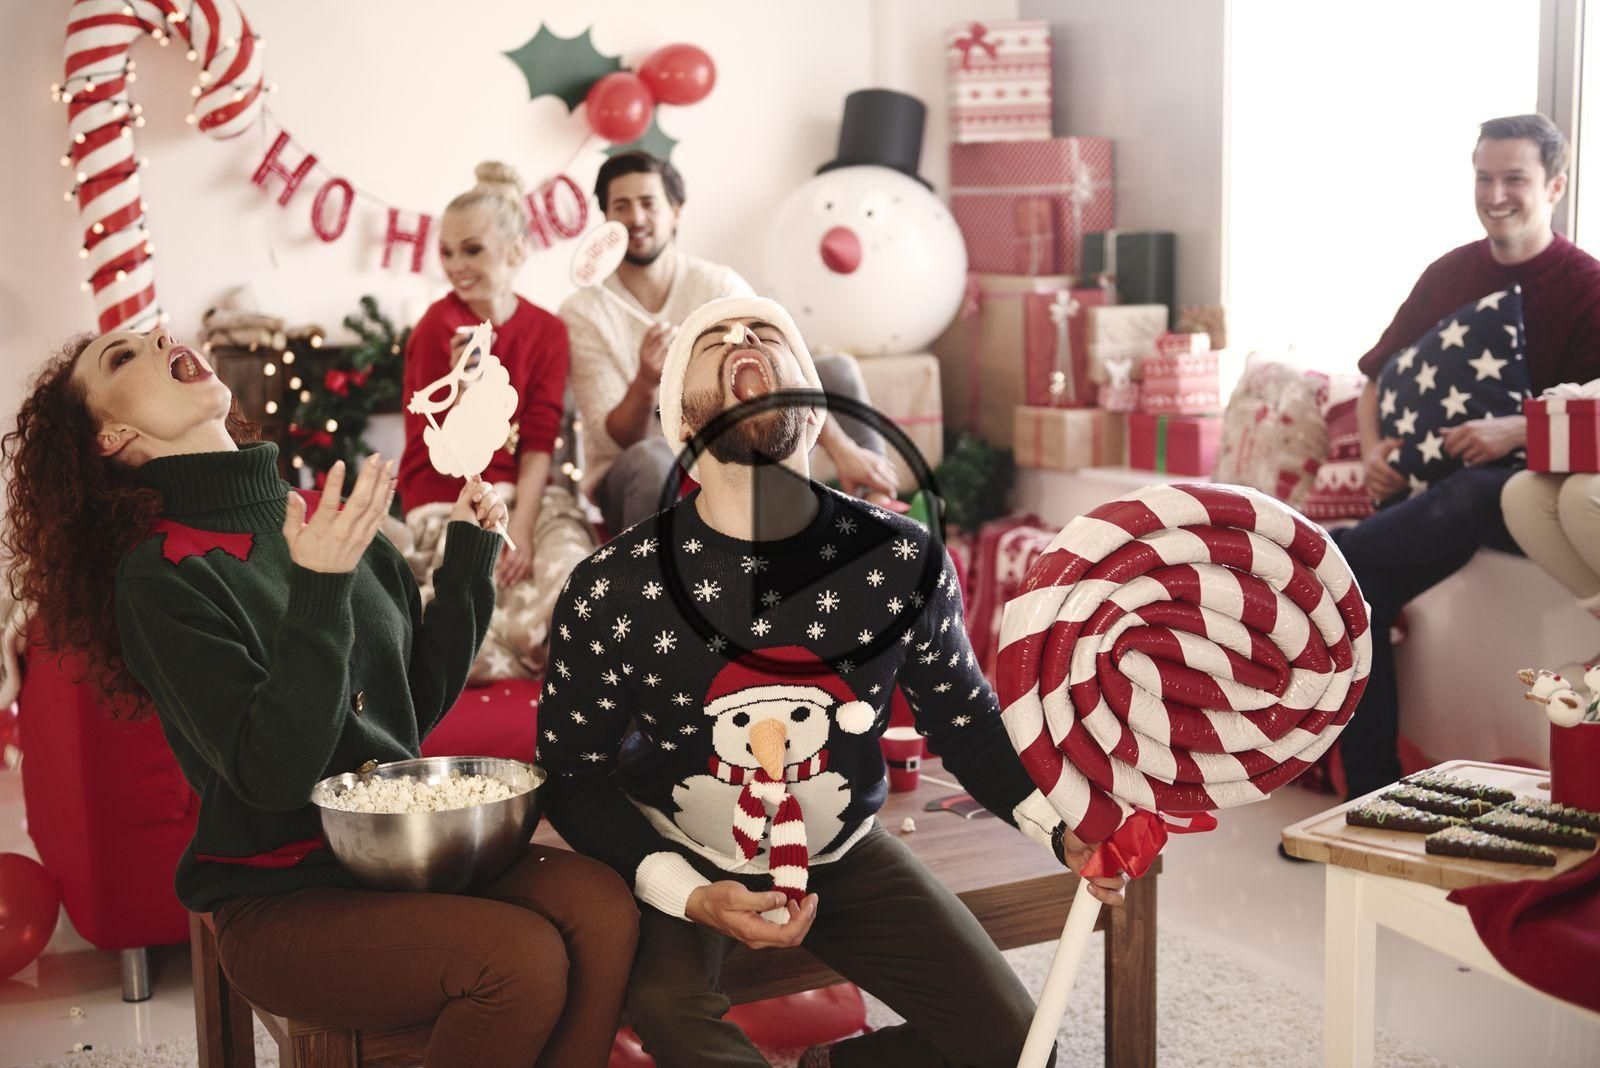 12 of the best Christmas party games and ideas in 2020